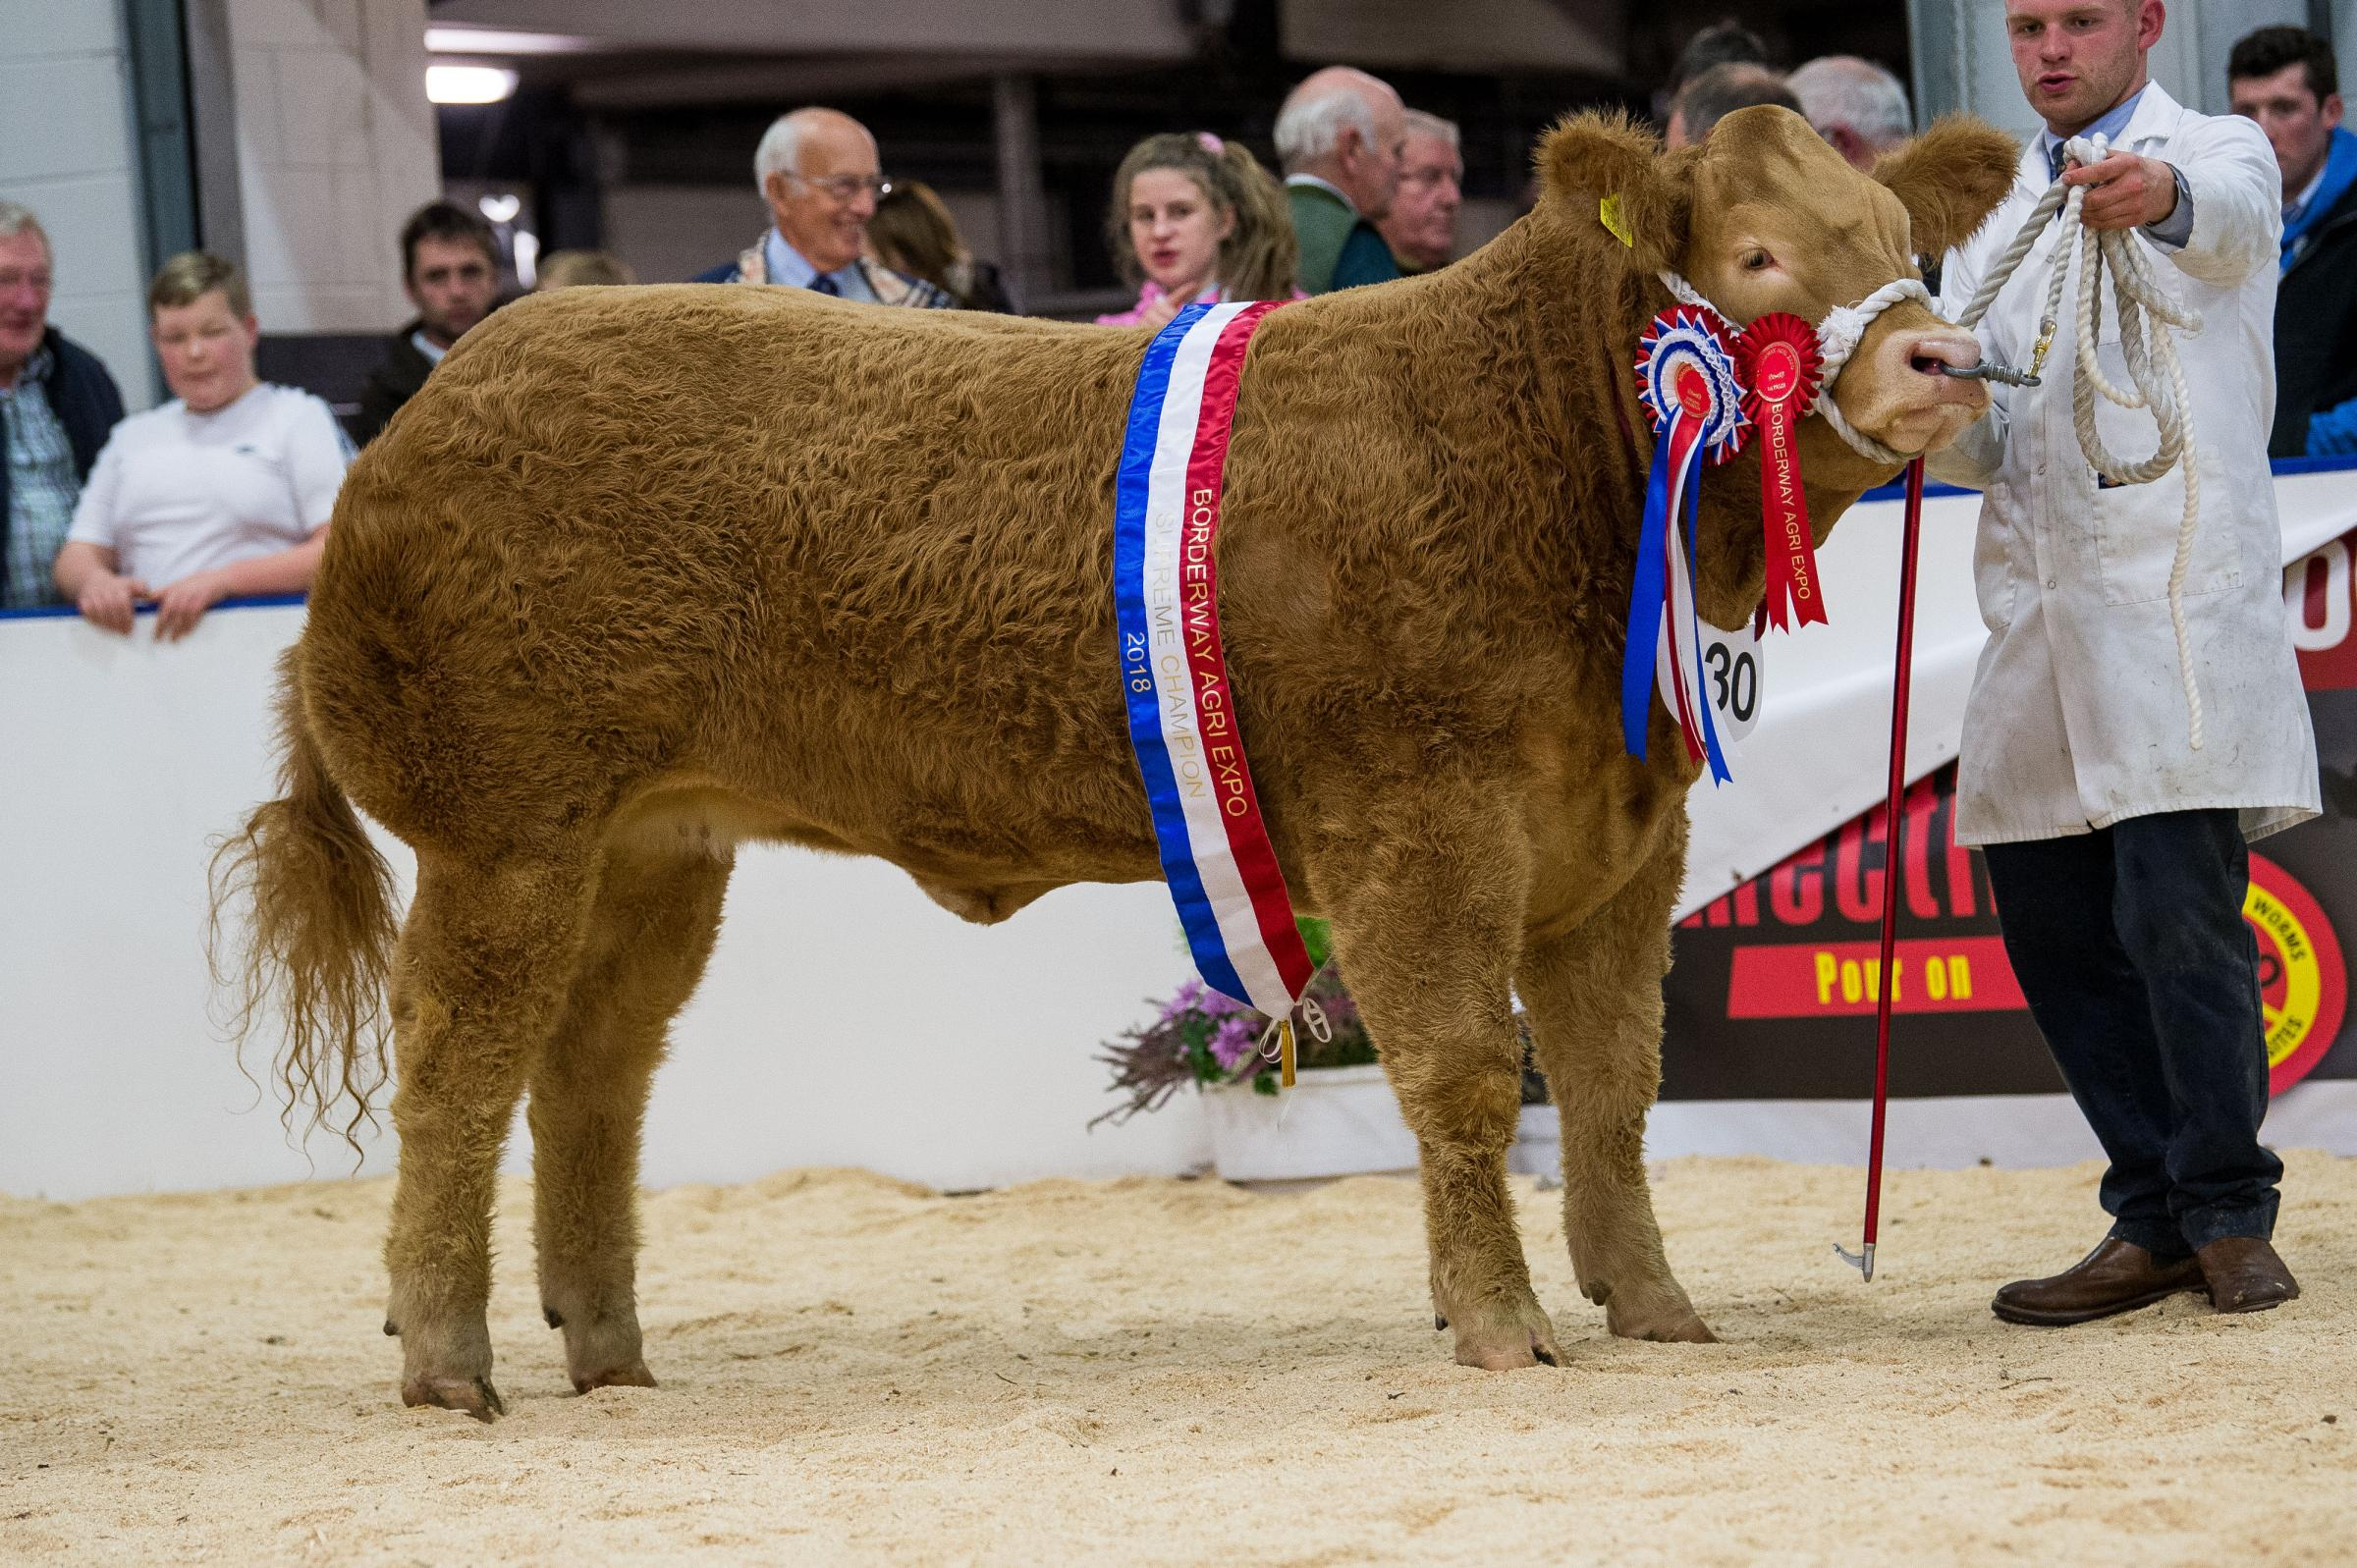 The overall commercial cattle champion and winning heifer was Strawberry Blonde, from Dermot Small                                               	                                Ref:RH021118104